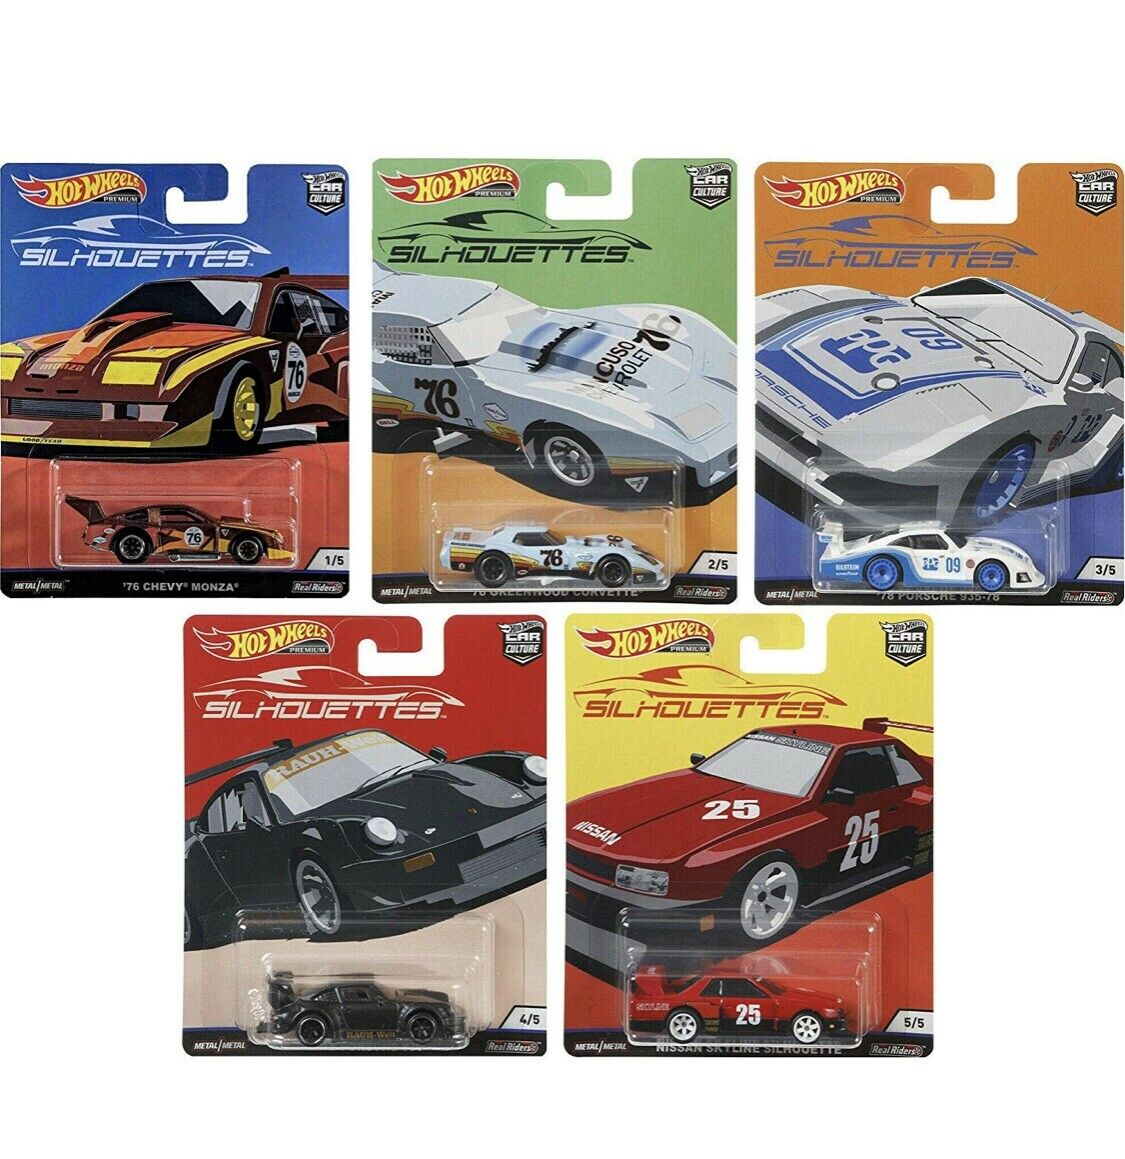 New 2019 Hot Wheels Car Culture Silhouttes 1 64 Diecast Model Cars Lot Of 5